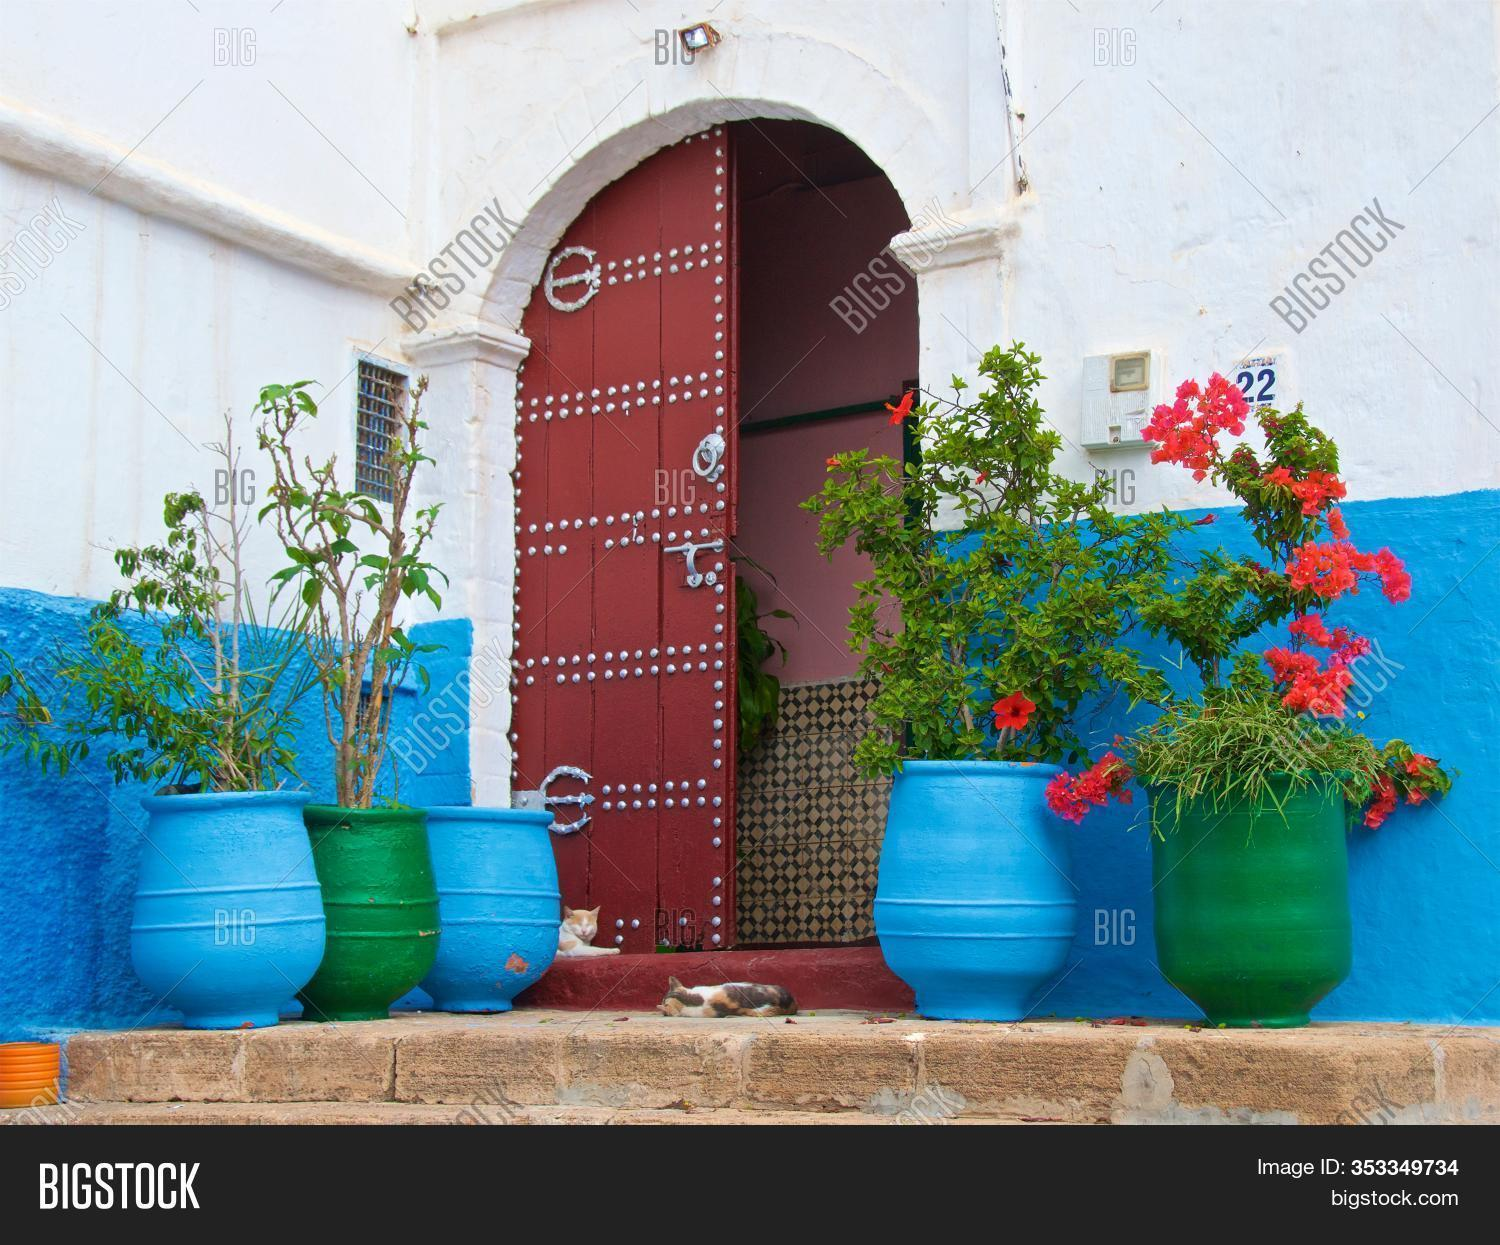 Colorful Flower Pots Image Photo Free Trial Bigstock